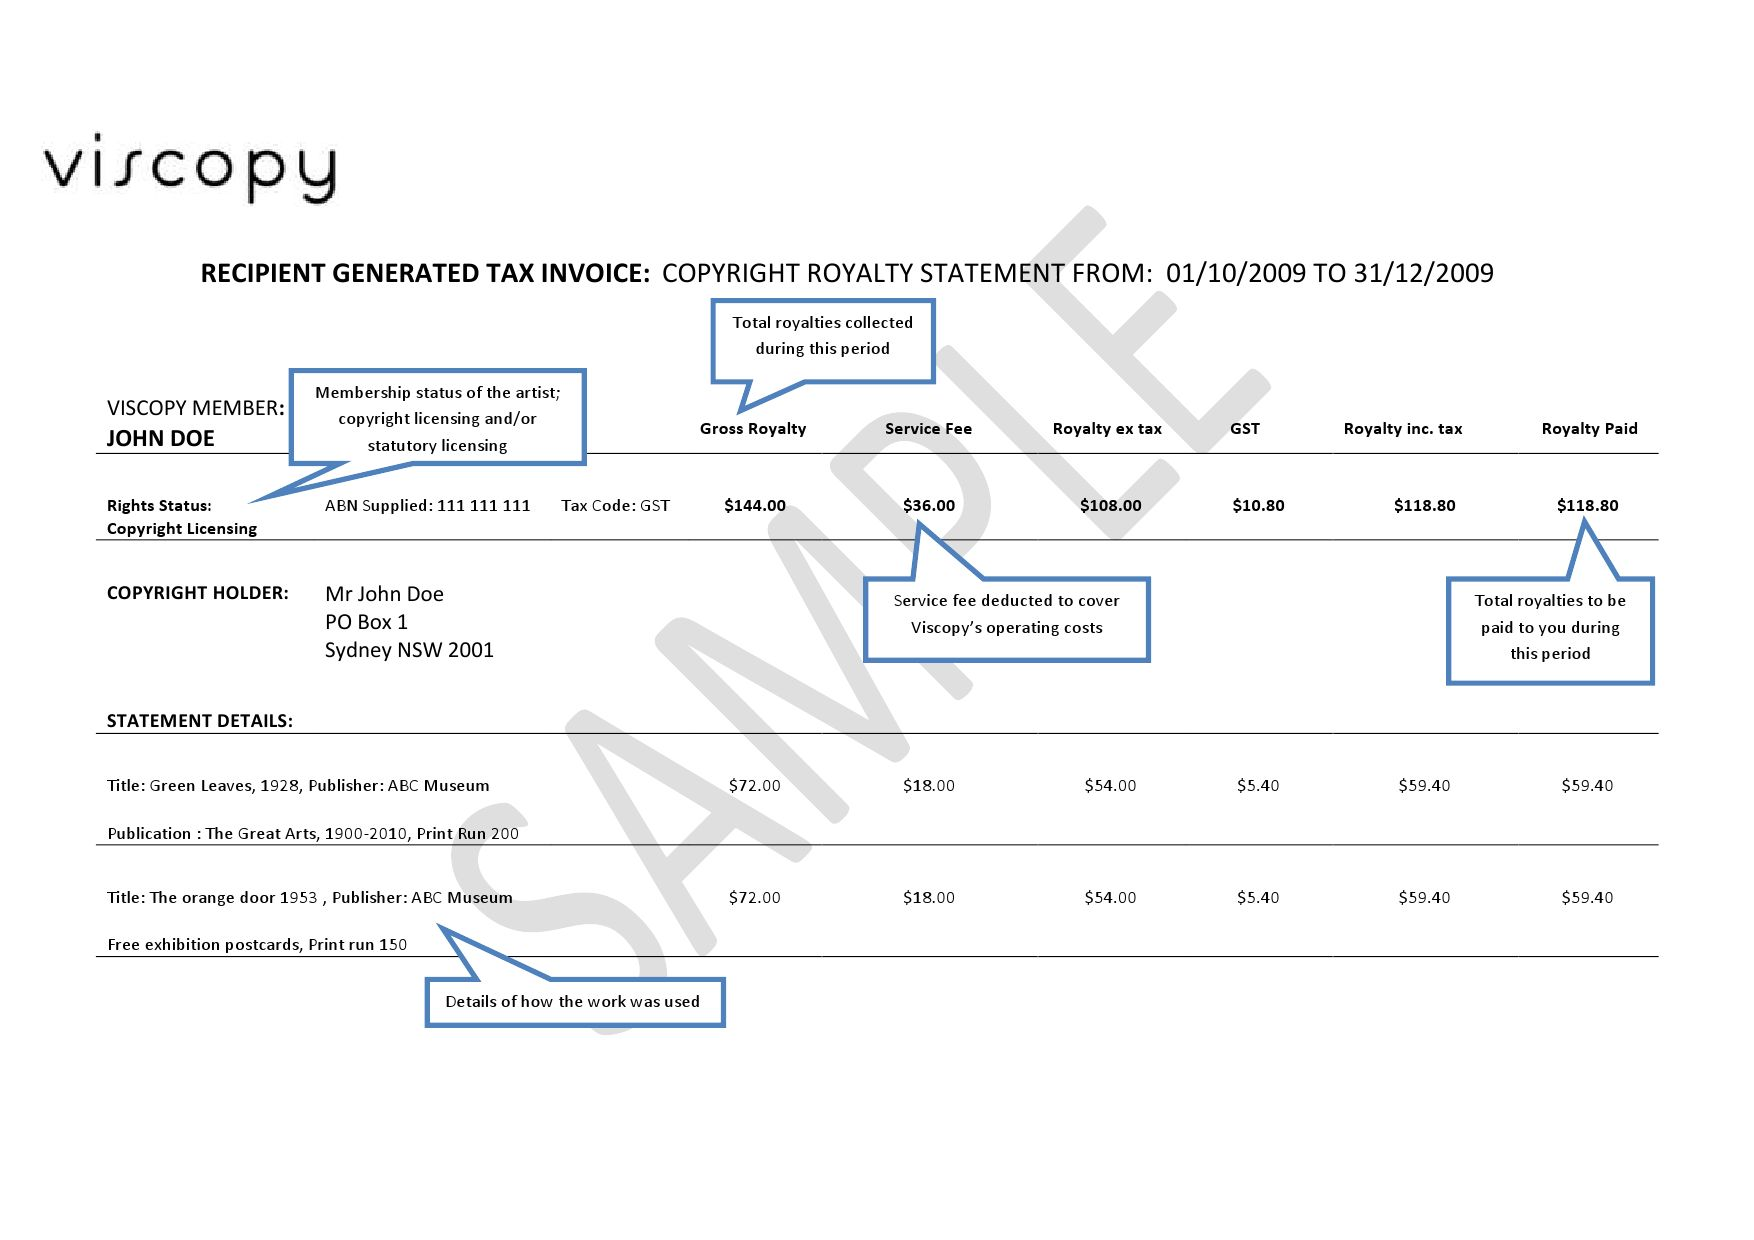 Royalty review council – royalty accounting statements & reports.